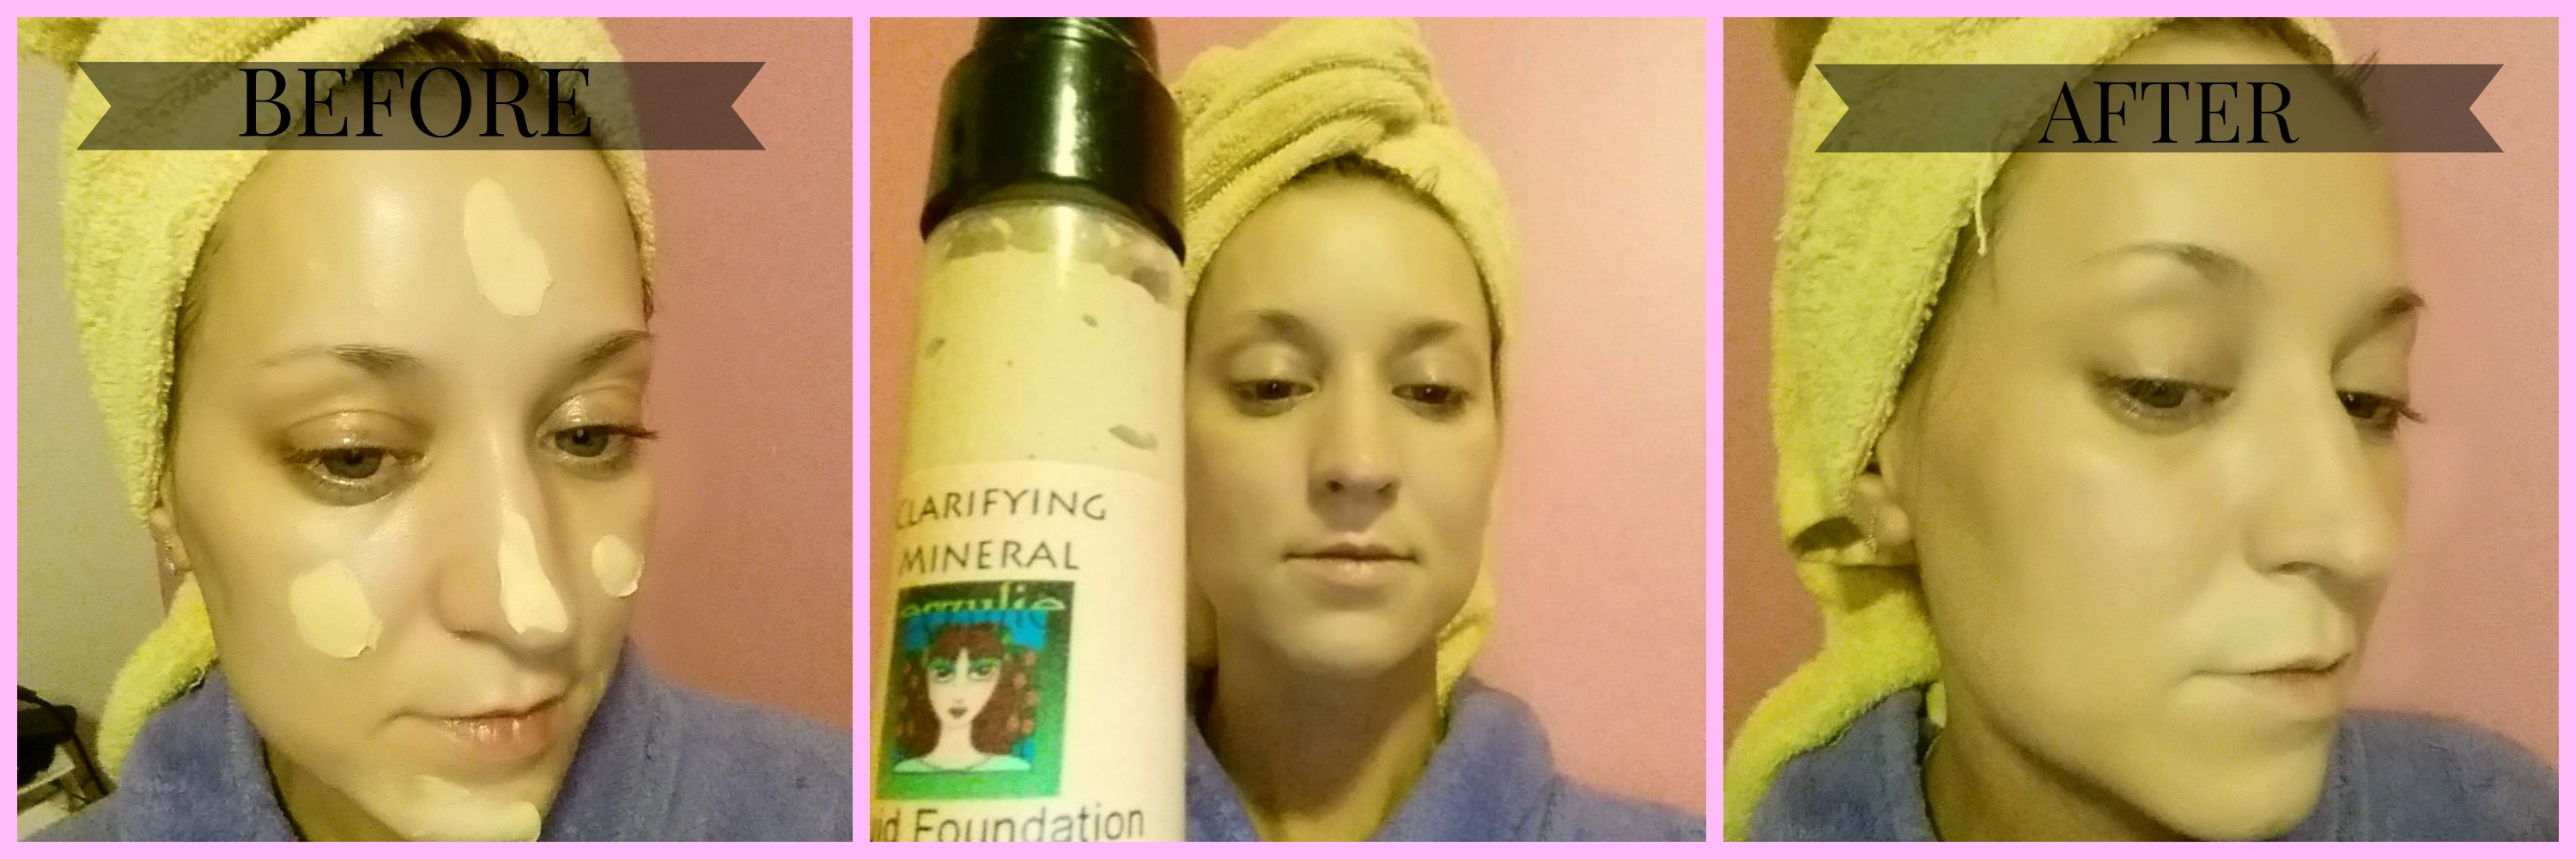 Erzulie Cosmetics Review (By WhippedGreenGirl.com) #ORGANIC #CLEAN #SAFE #MAKEUP (before & after pics included)